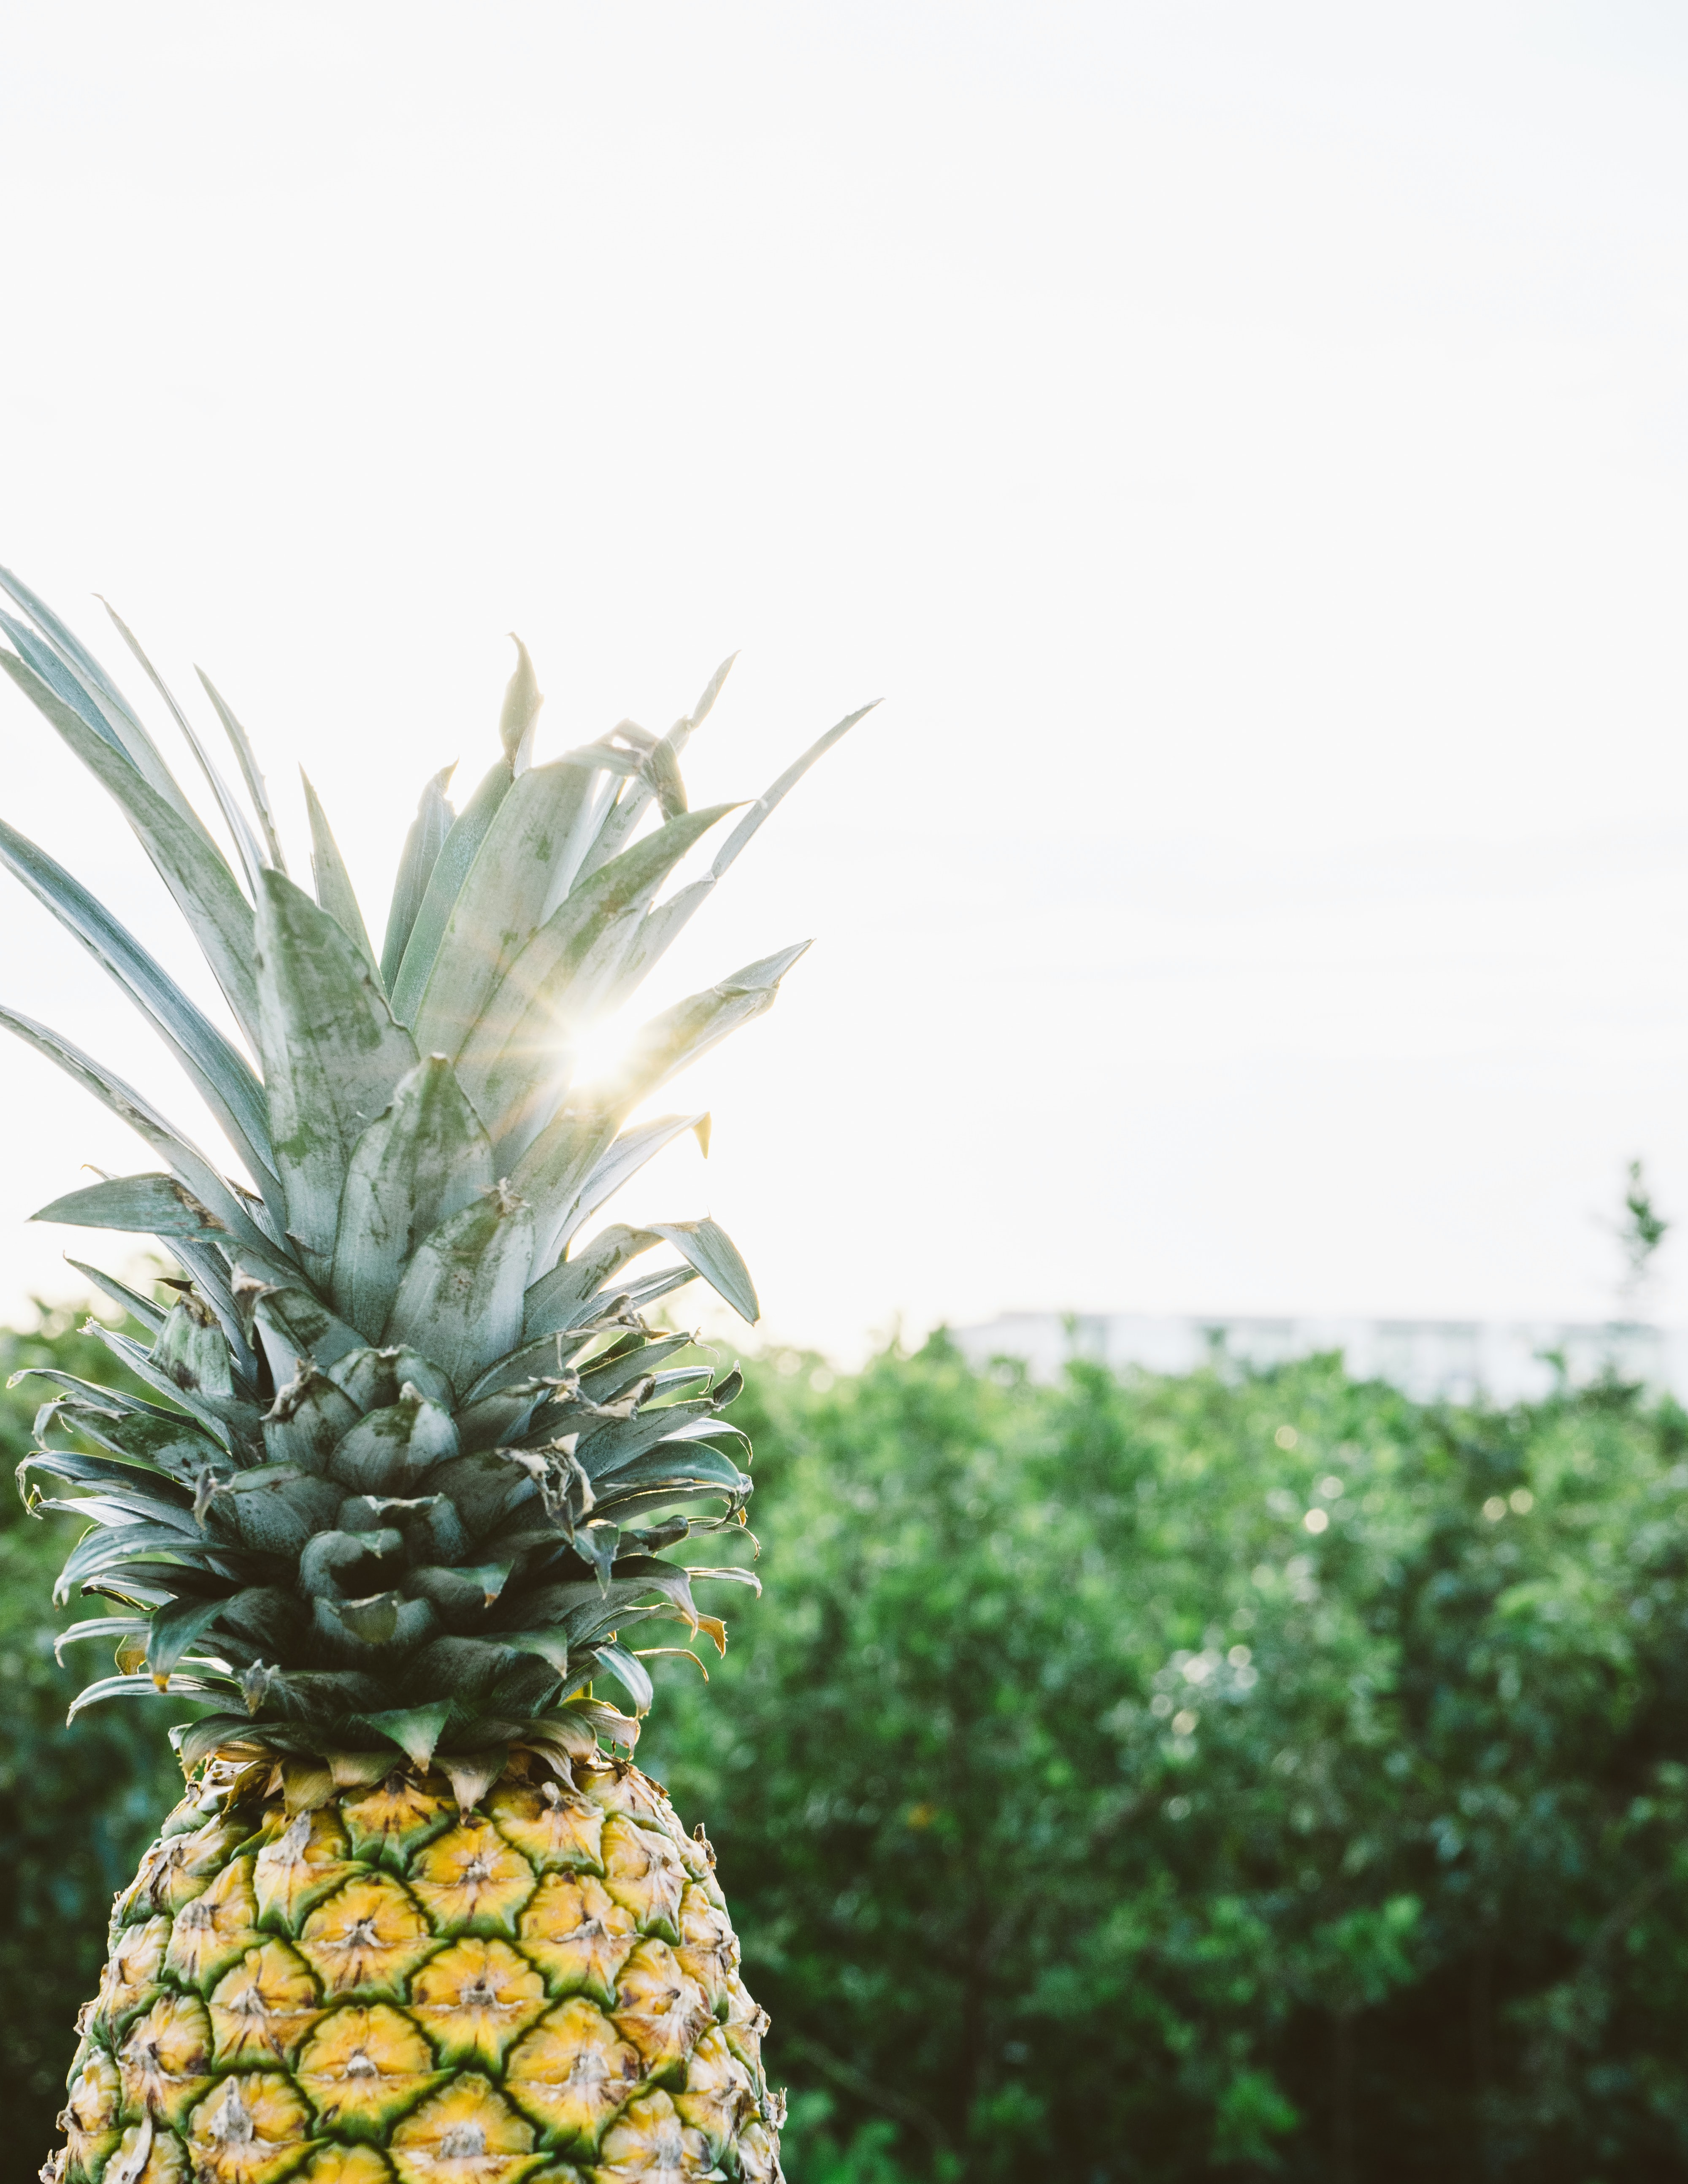 Pineapple with green top in front of a leafy garden